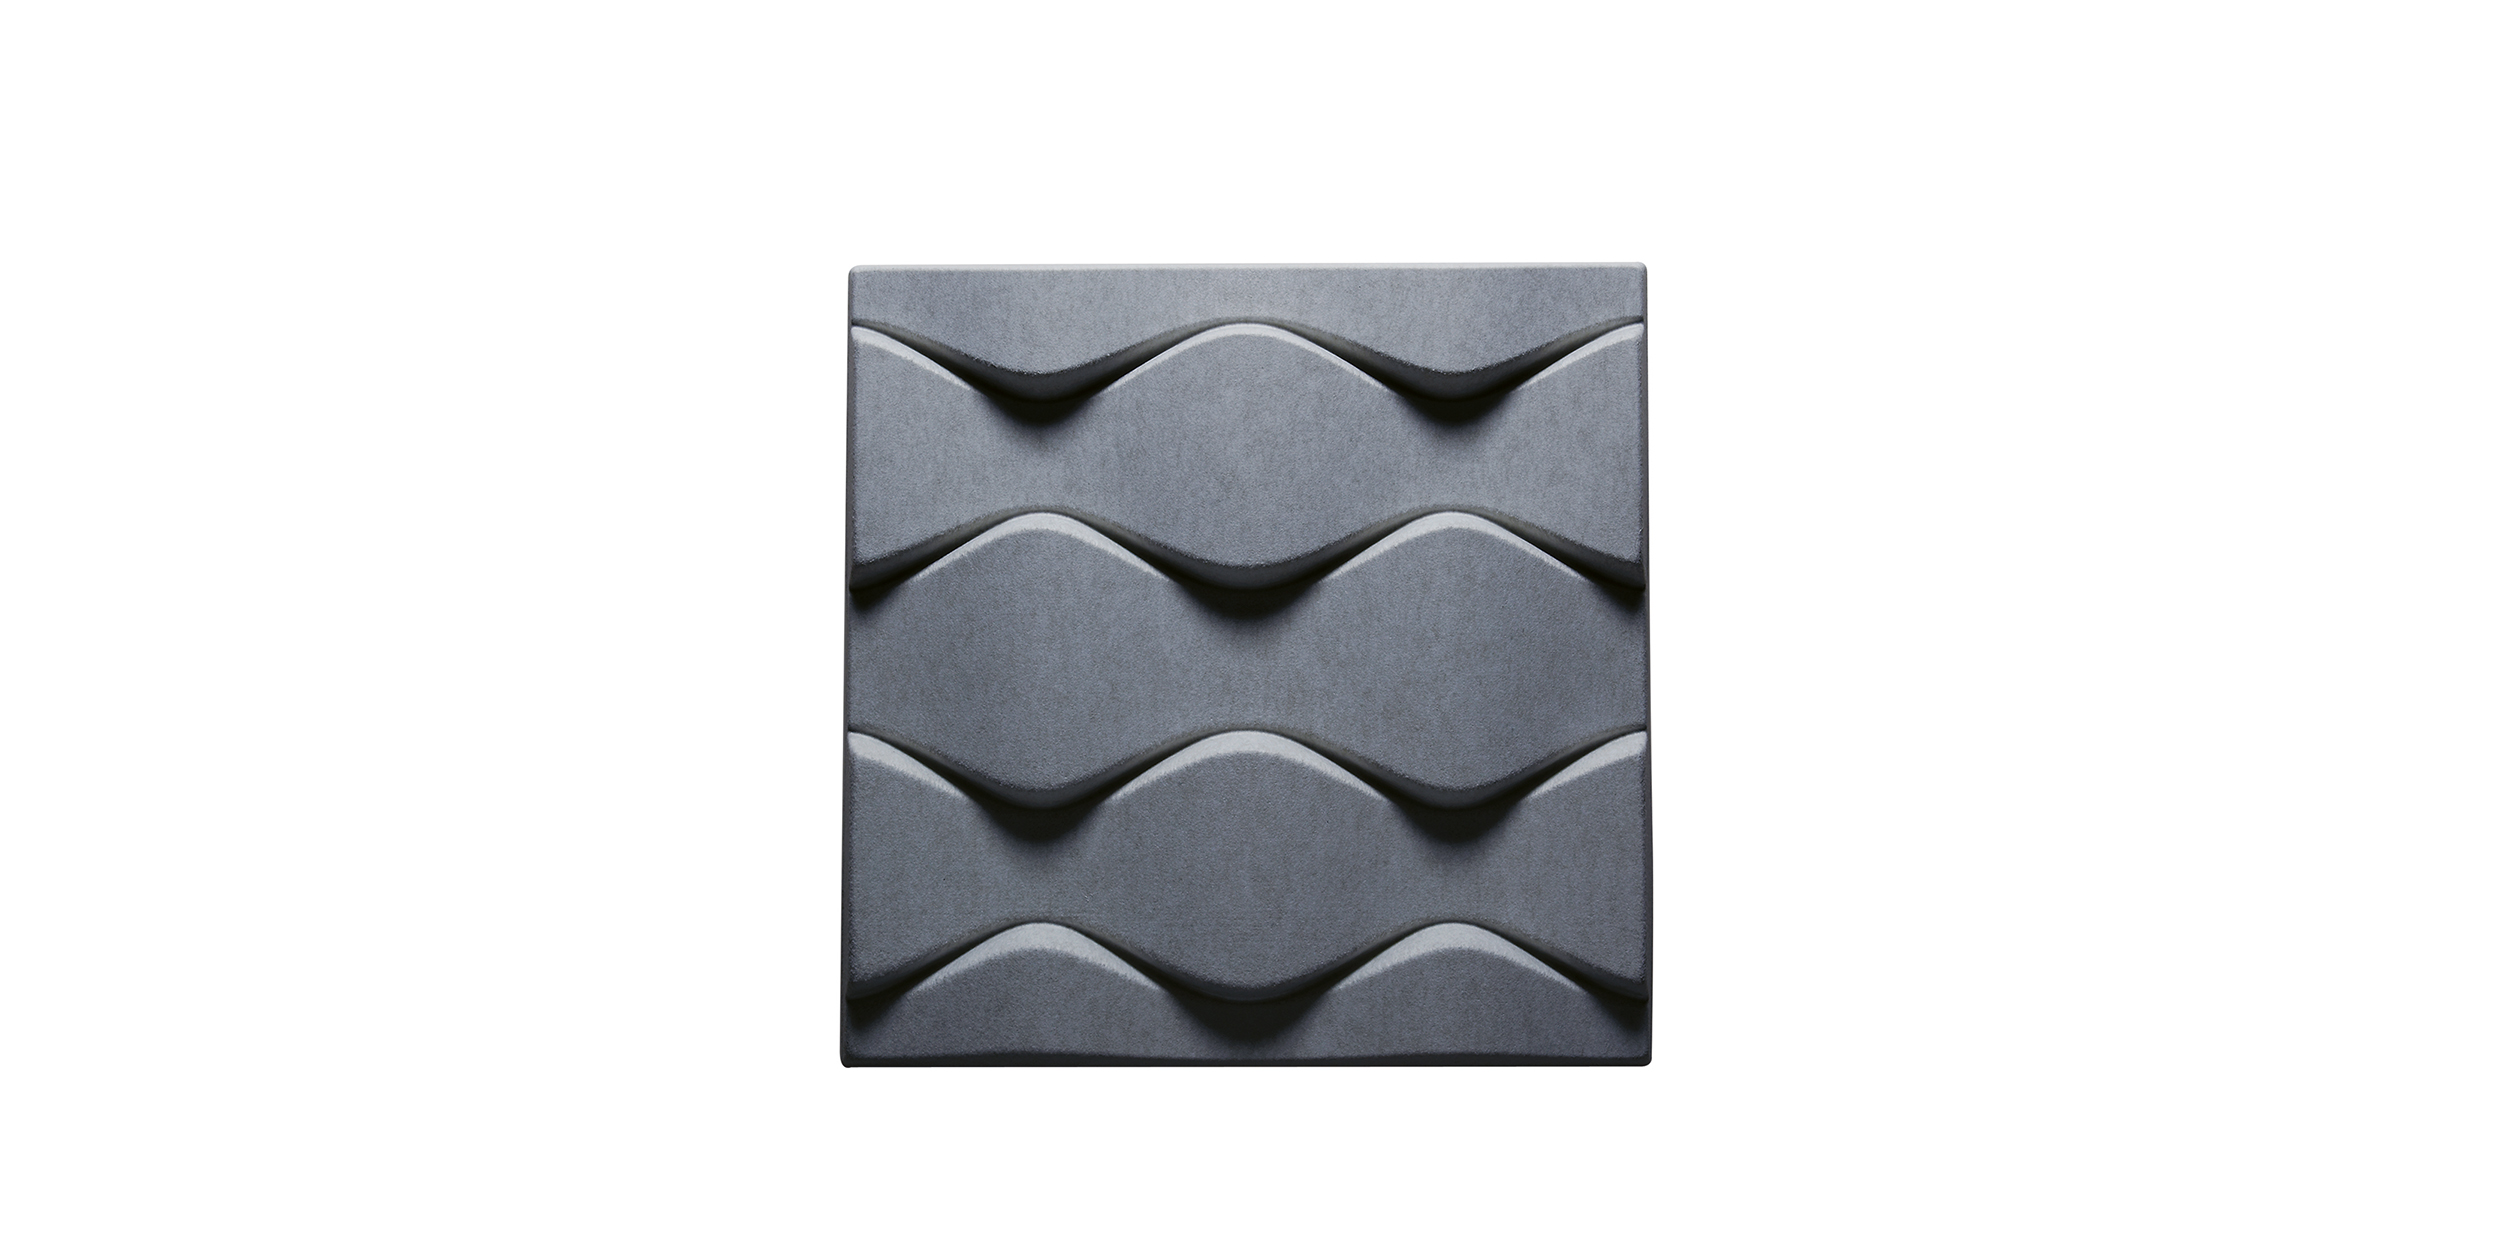 Soundwave® Flo, Acoustic panel by Karim Rashid